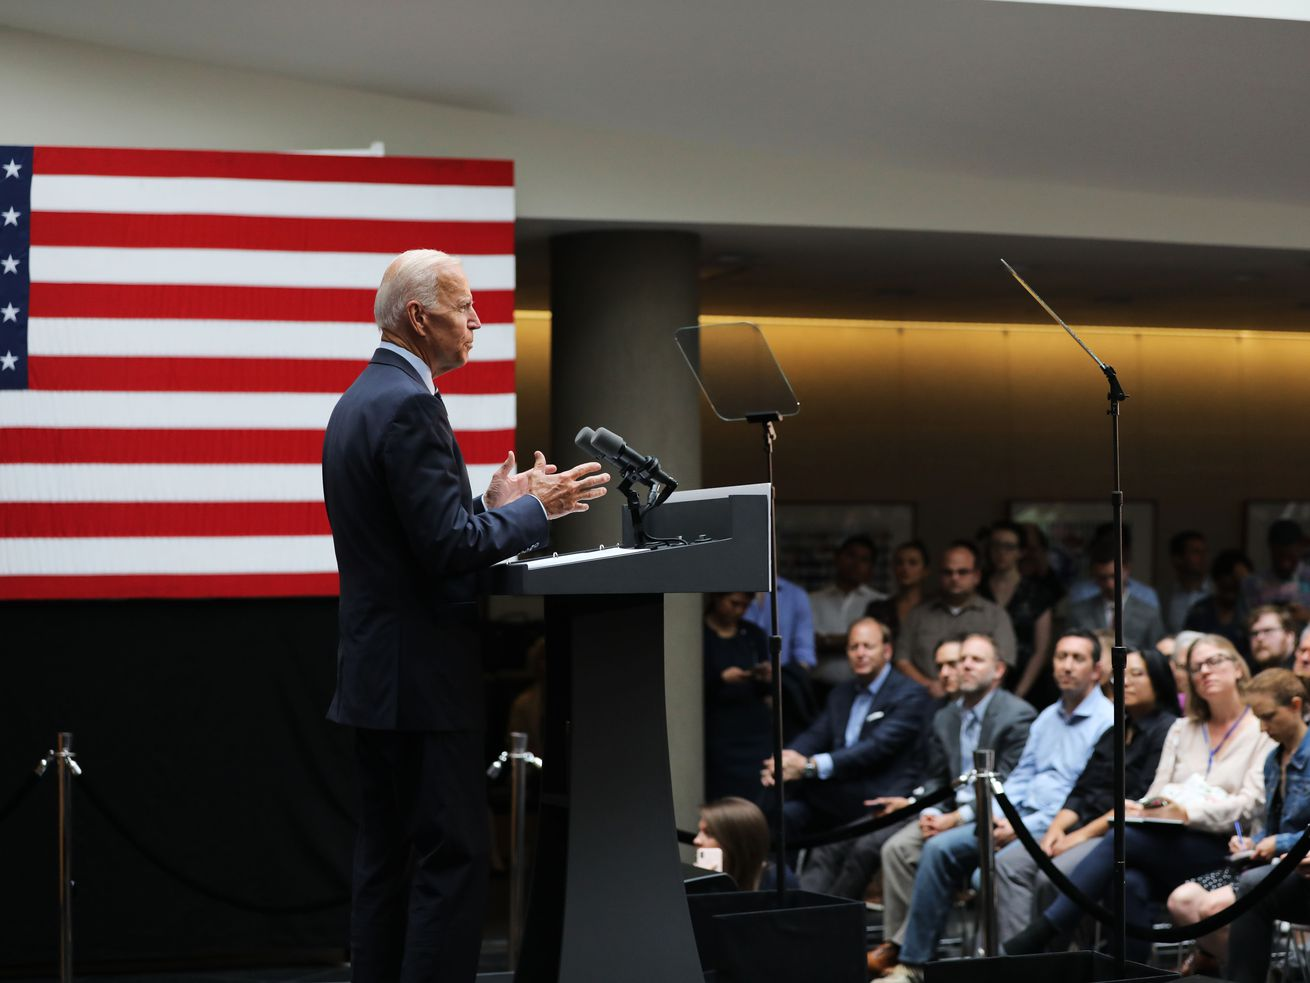 Former Vice President Joe Biden delivers his foreign policy speech in New York on July 11, 2019.